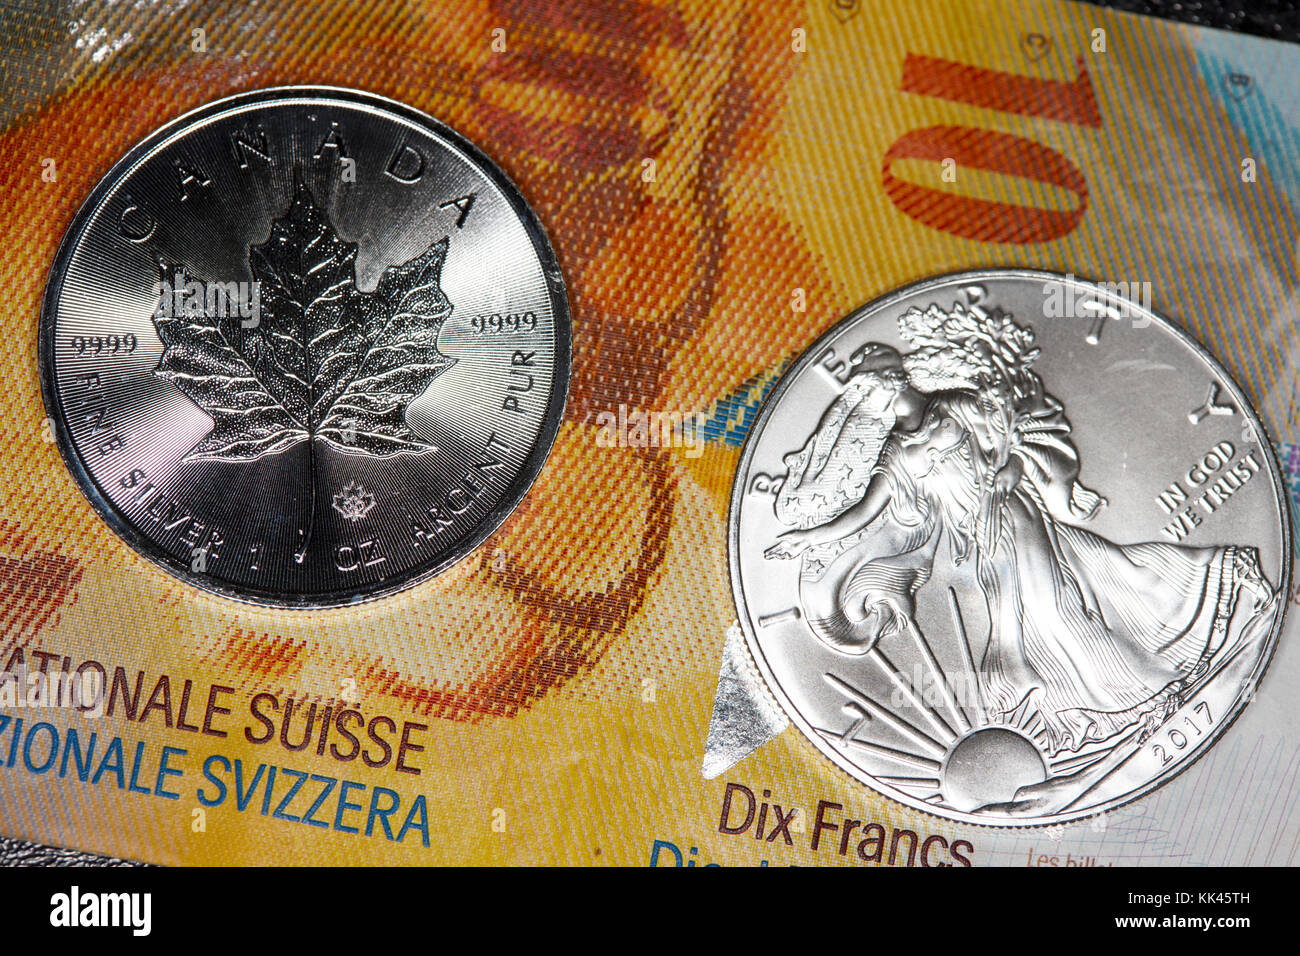 swiss franc banknotes with 1oz silver bullion coins - Stock Image